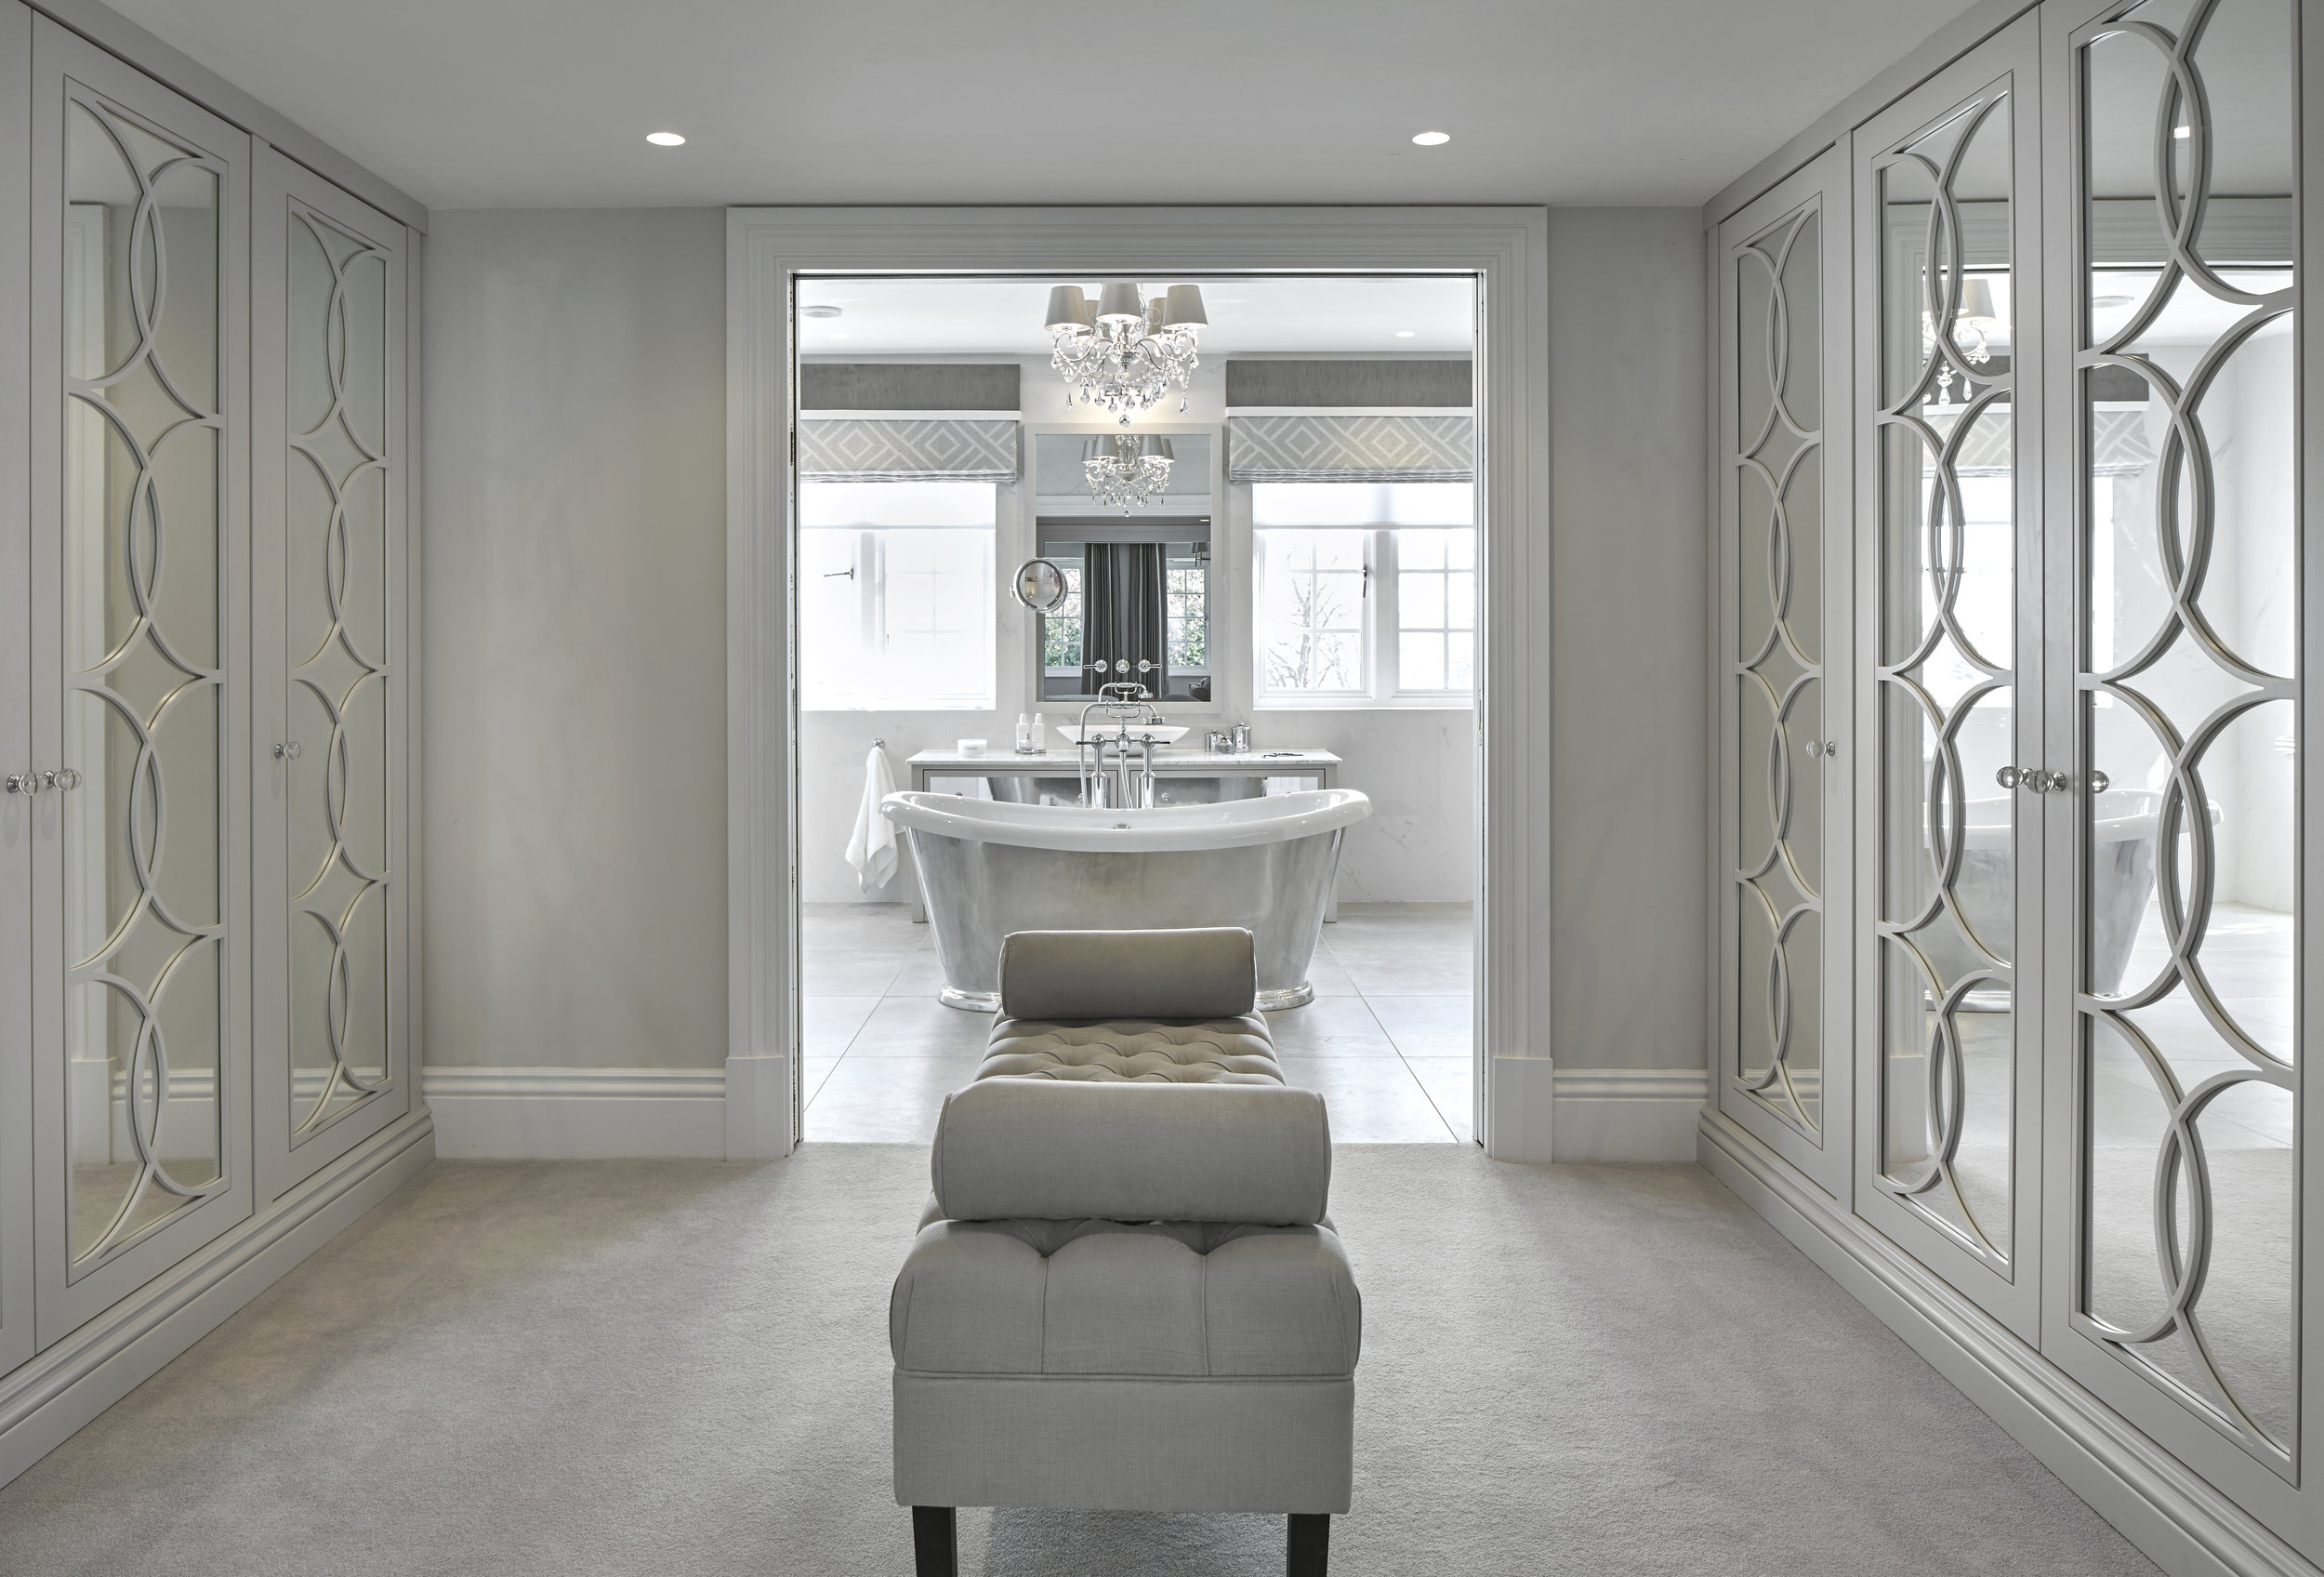 """- """"By working closely with our customers we build a detailed understanding of your design taste, personal aesthetic and storage needs. We will guide you through the design process to select the best options for you, to ensure you have a bespoke experience from design through to installation.""""- Wayne Borg, Partner, The Heritage Wardrobe Company"""